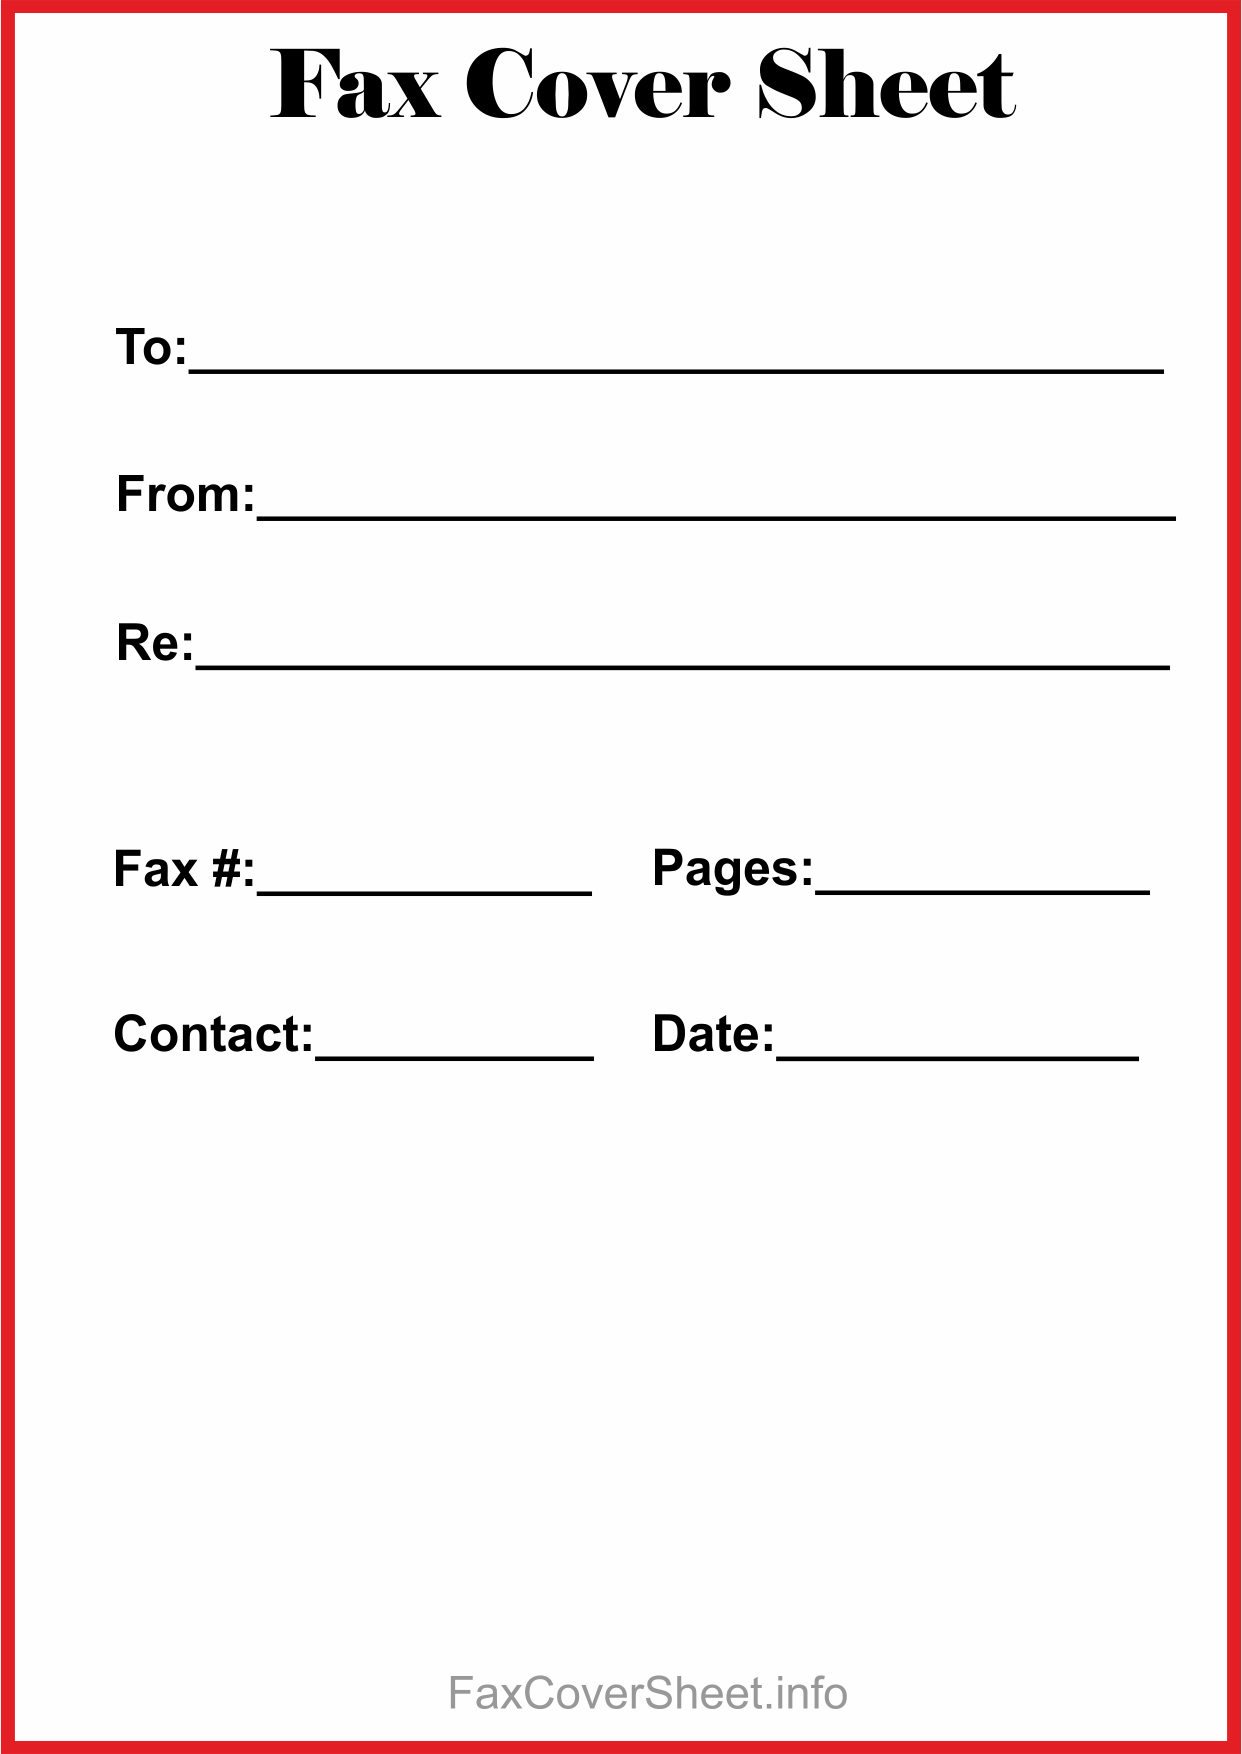 How To Find Blank Fax Cover Sheet Within Microsoft Word In Fax Cover Sheet Template Word 2010